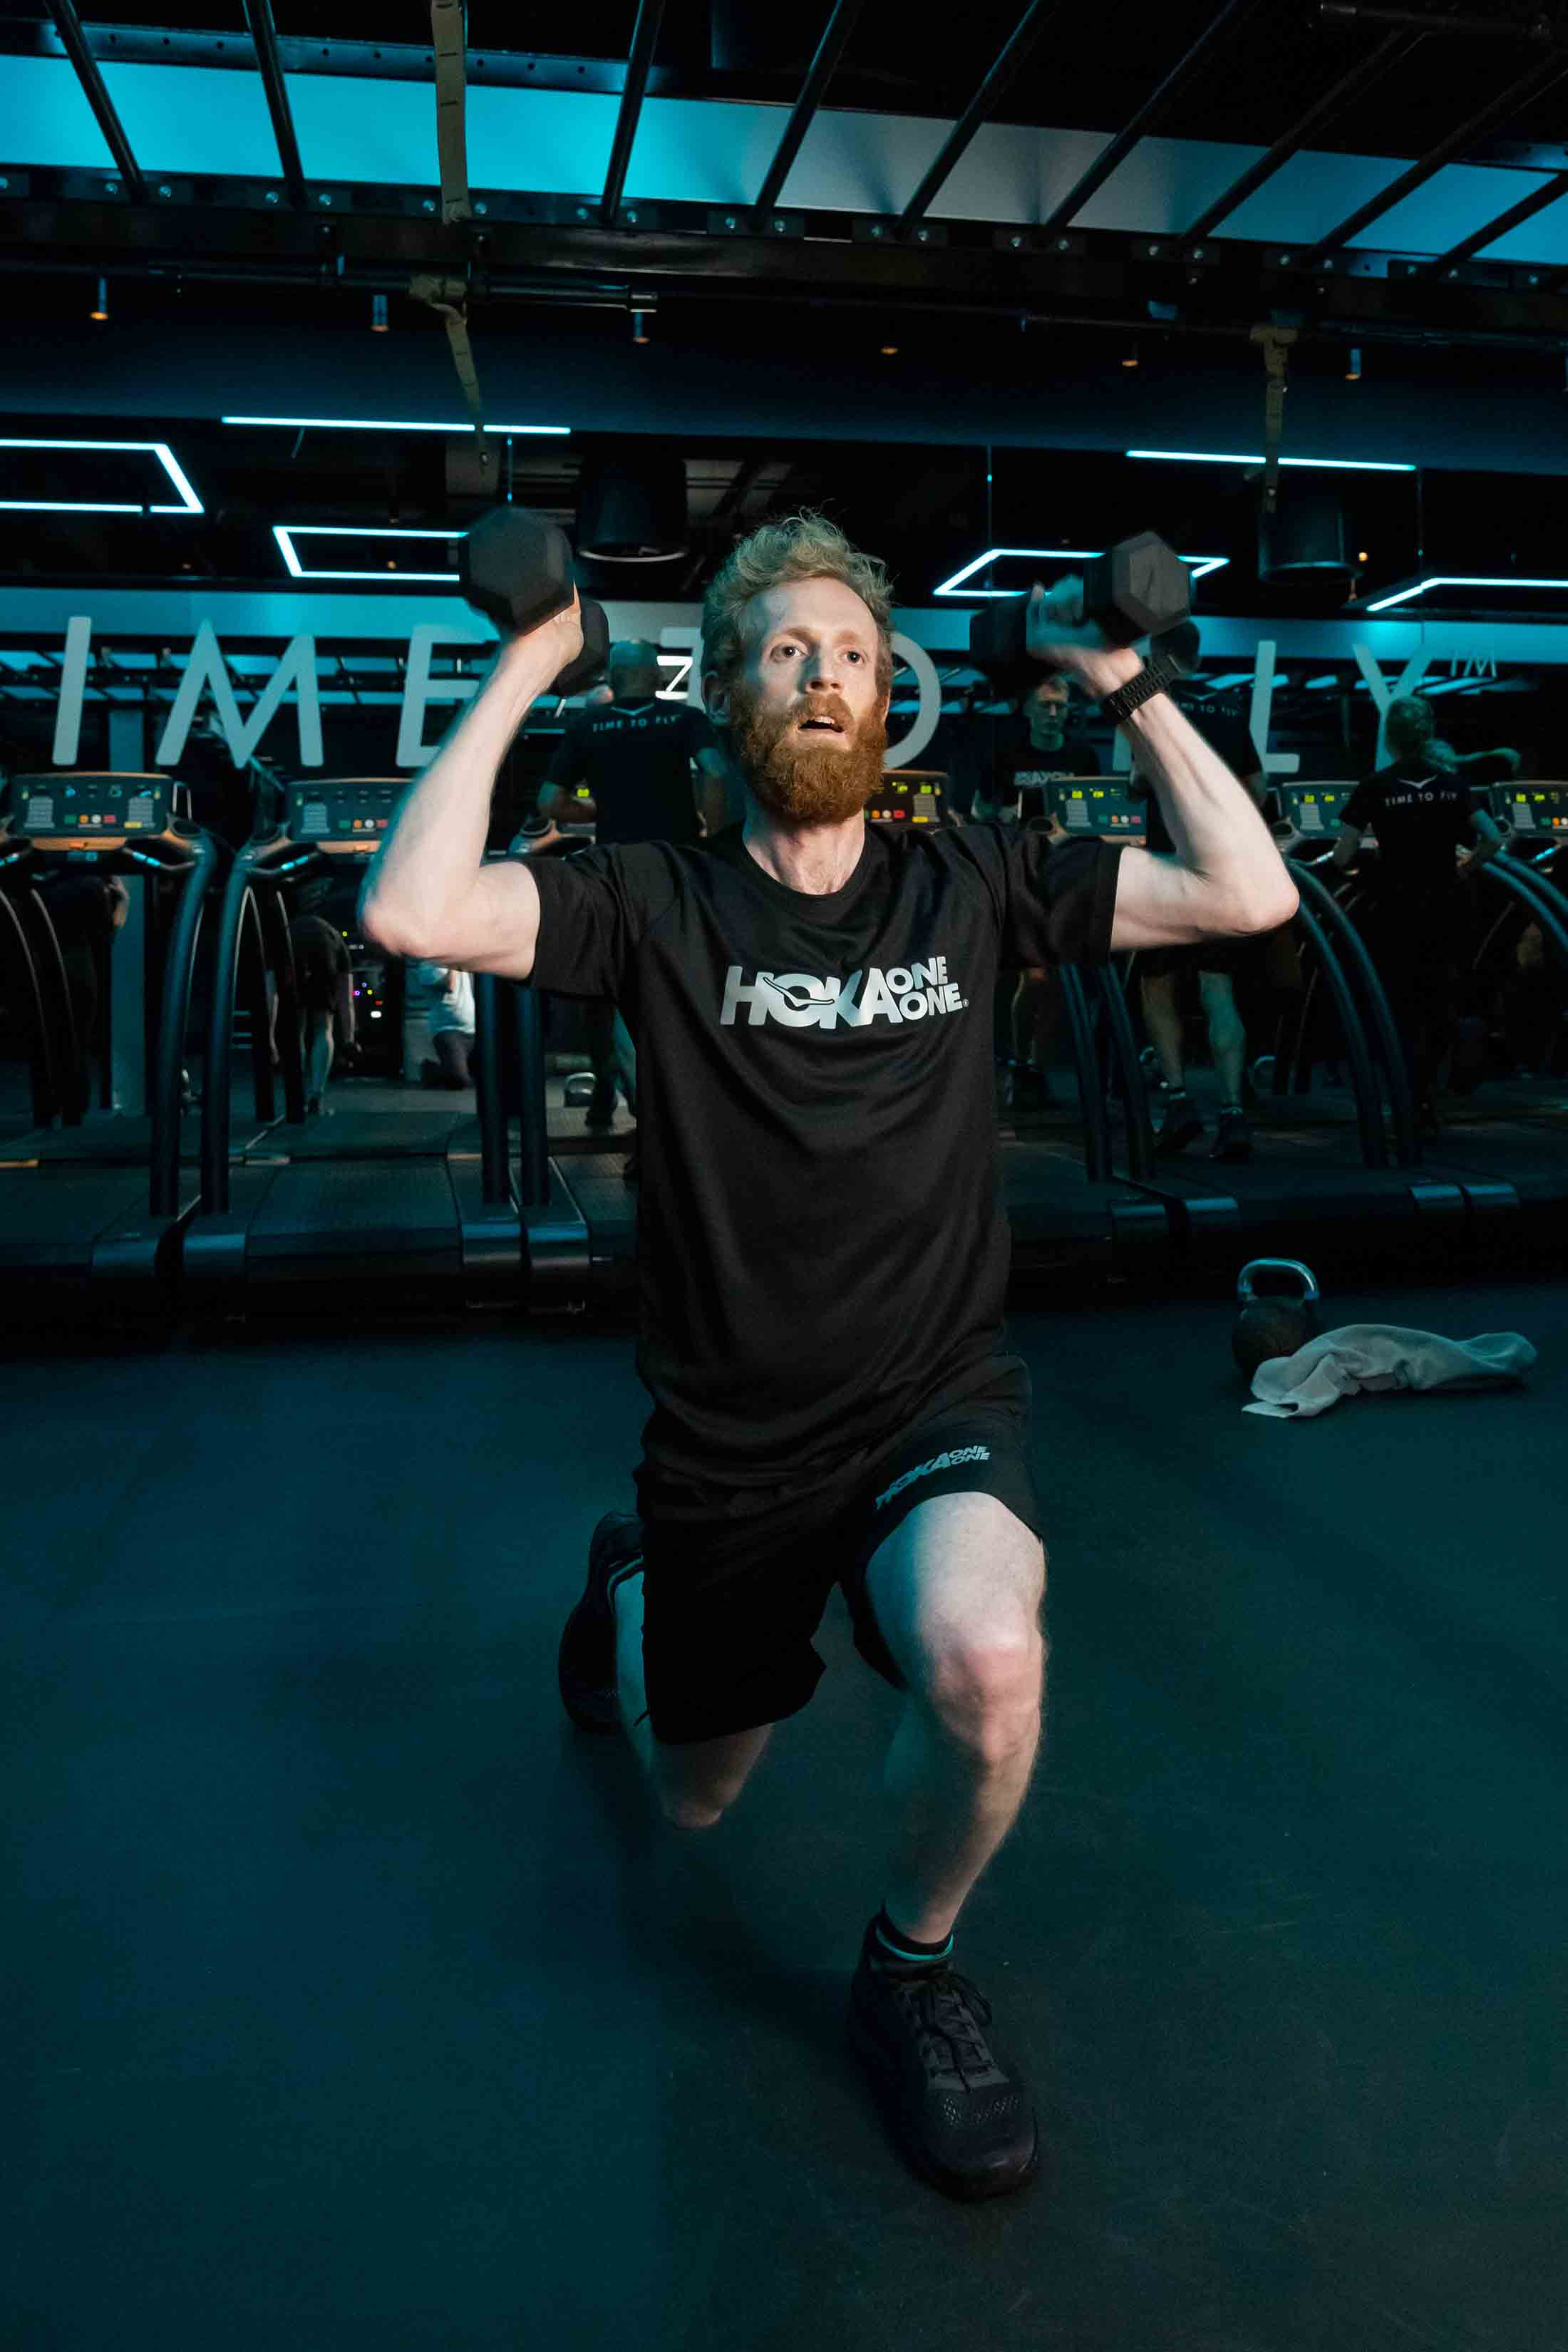 Participant lifts dumbbells at HOKA Fly at Night event in London